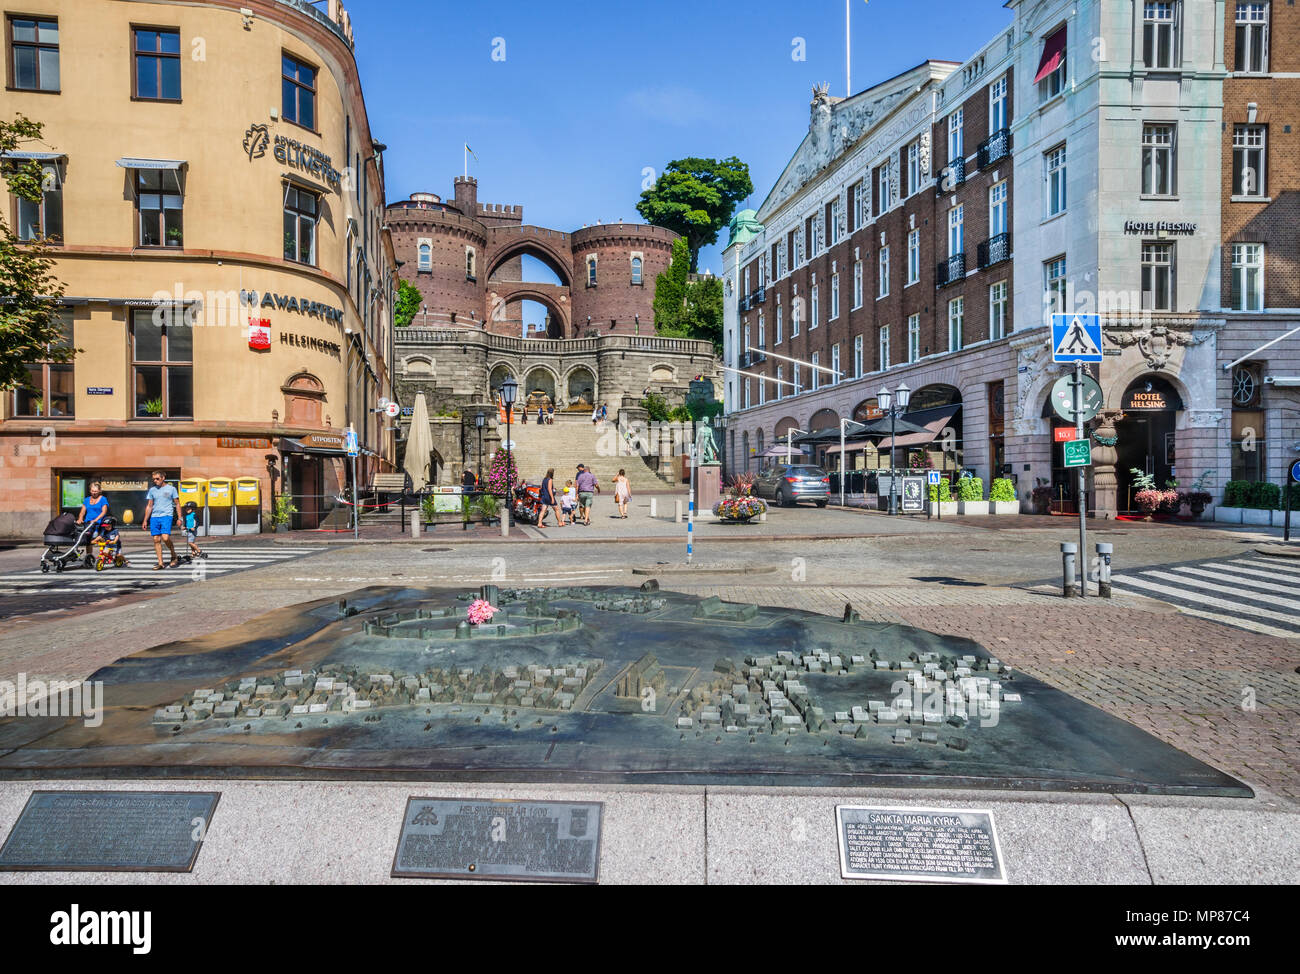 bronce scale model of historic Helsingborg at the Stortoget central main square against the backdrop of the Kärnan mediival castle, Helsingborg, Scani - Stock Image